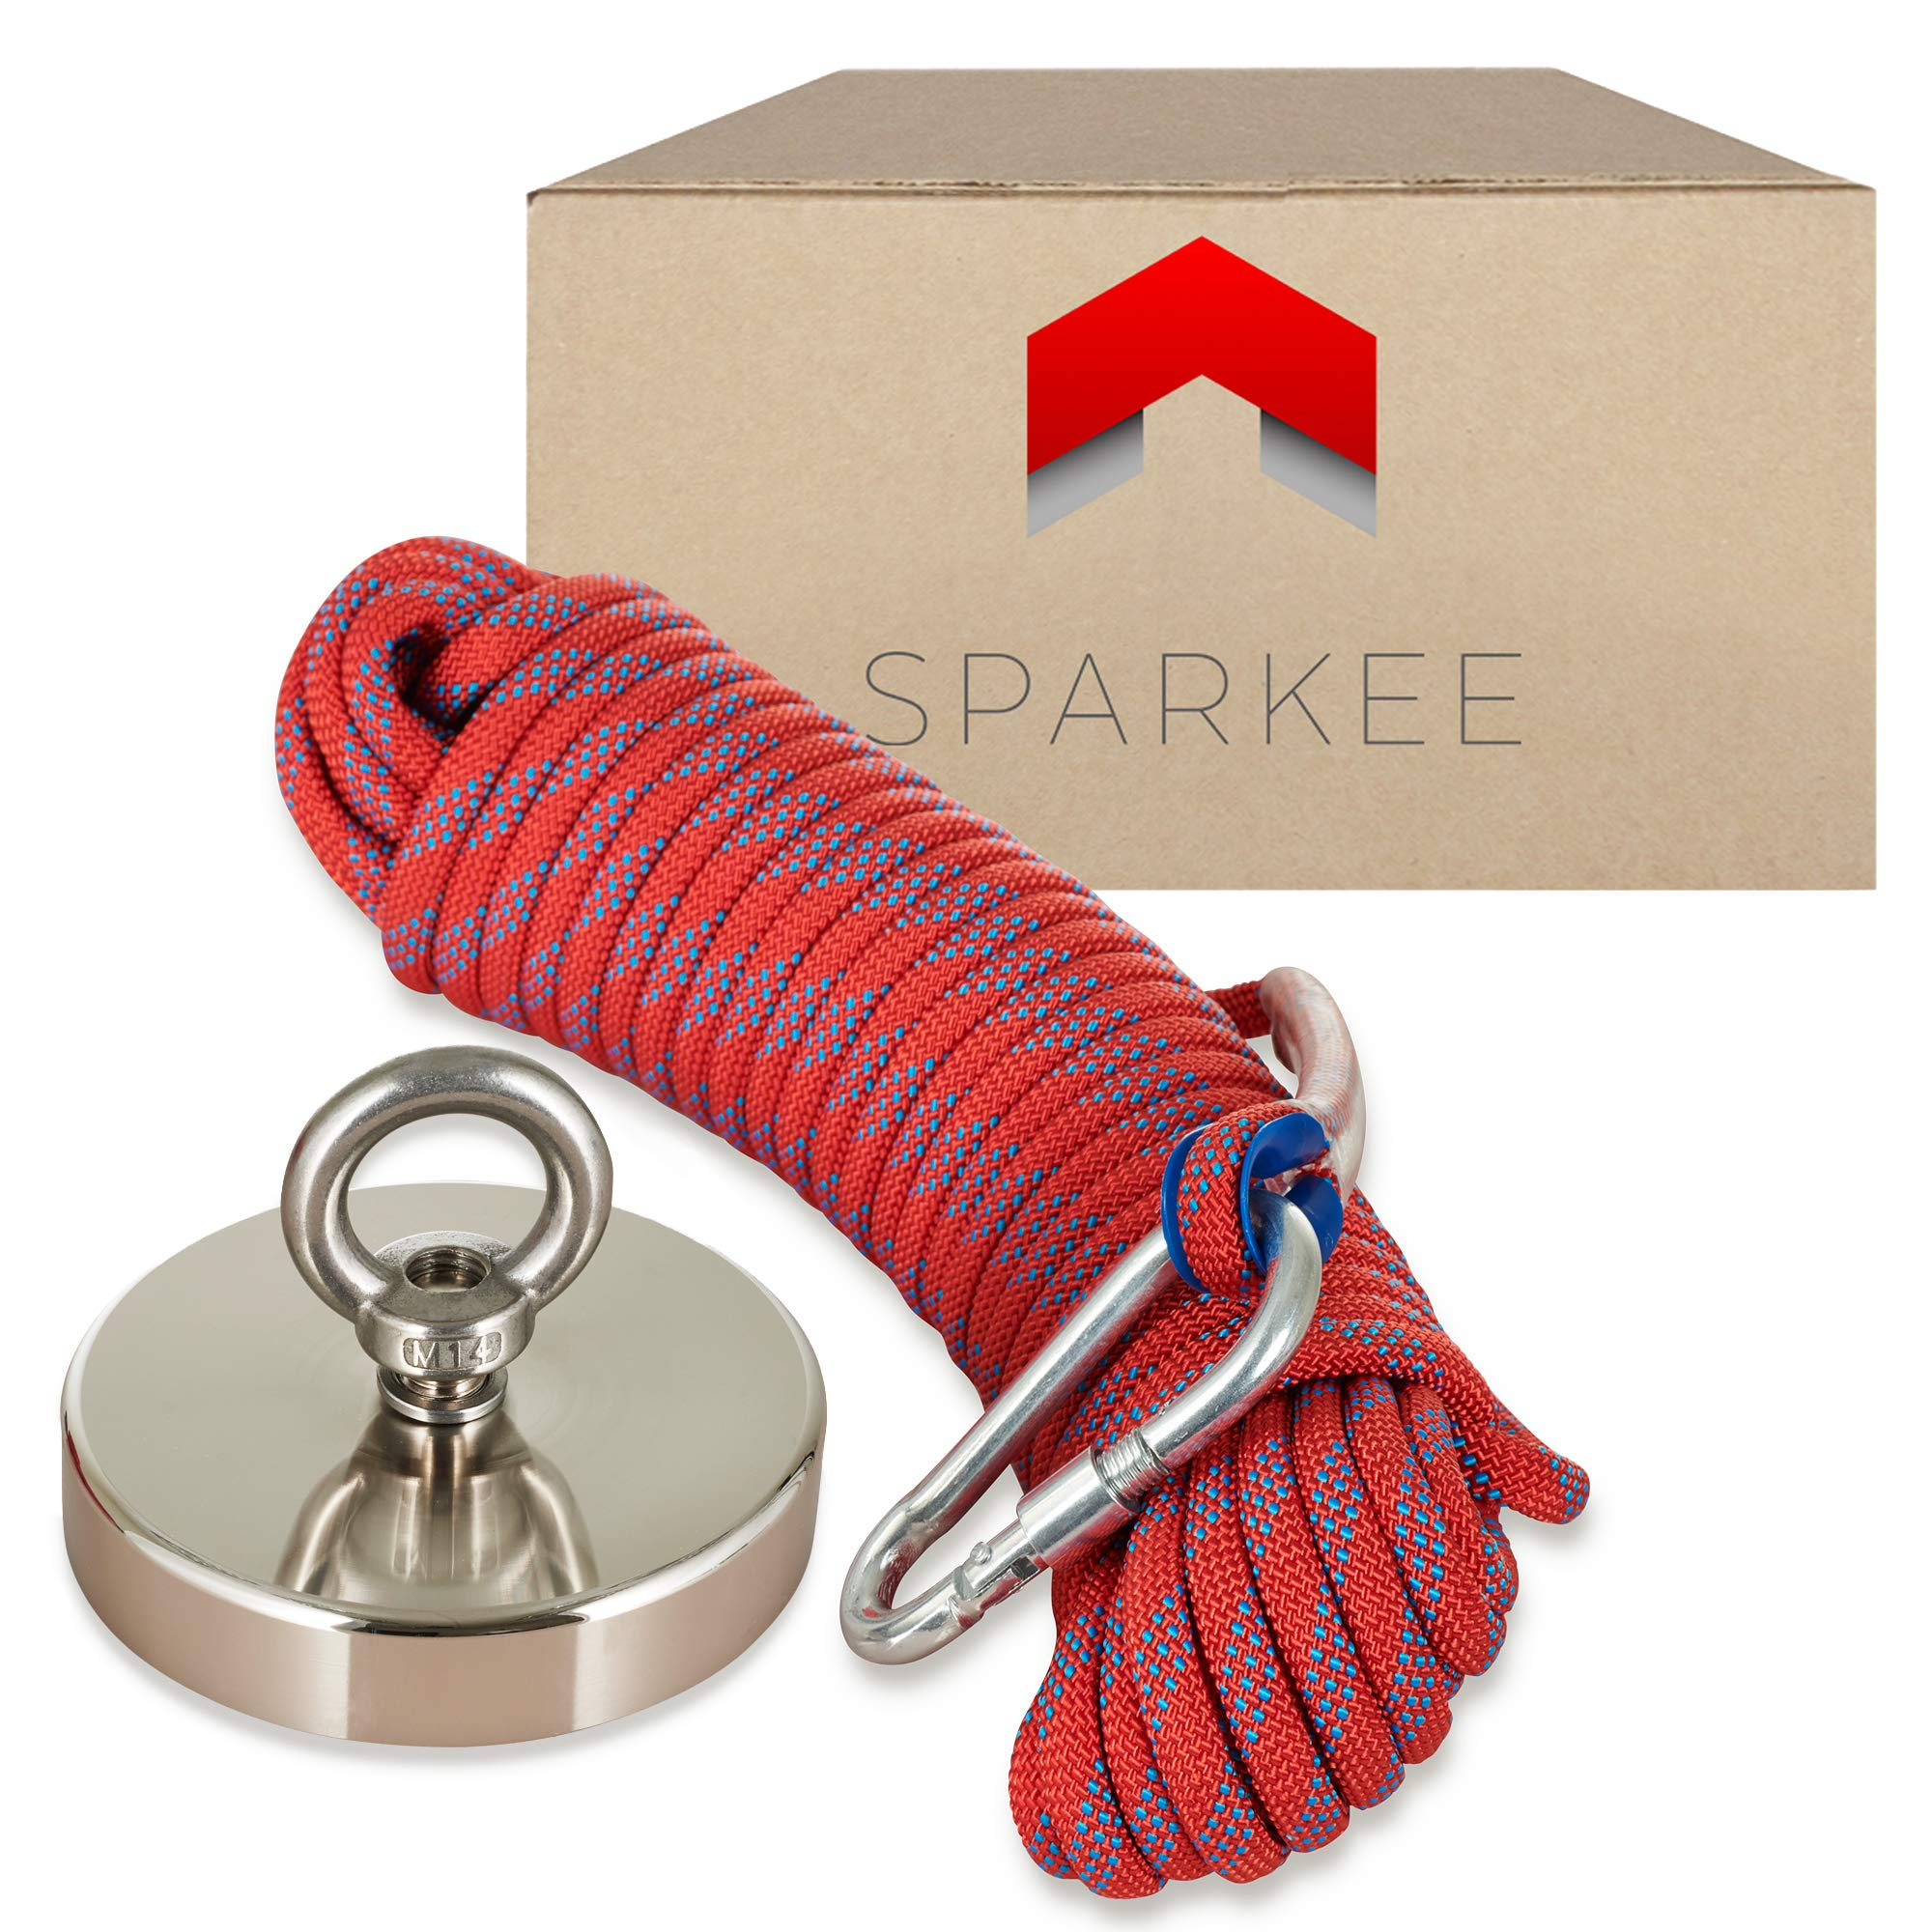 Sparkee Fishing Magnet Kit - 1333lb Super Strong Neodymium Magnet 4.72'' with 8mm 65ft Long Paracord Rope& Carabiner for Magnet Fishing, Underwater Treasure Hunting, Lifting & Retrieving Metal Objects by SPARKEE